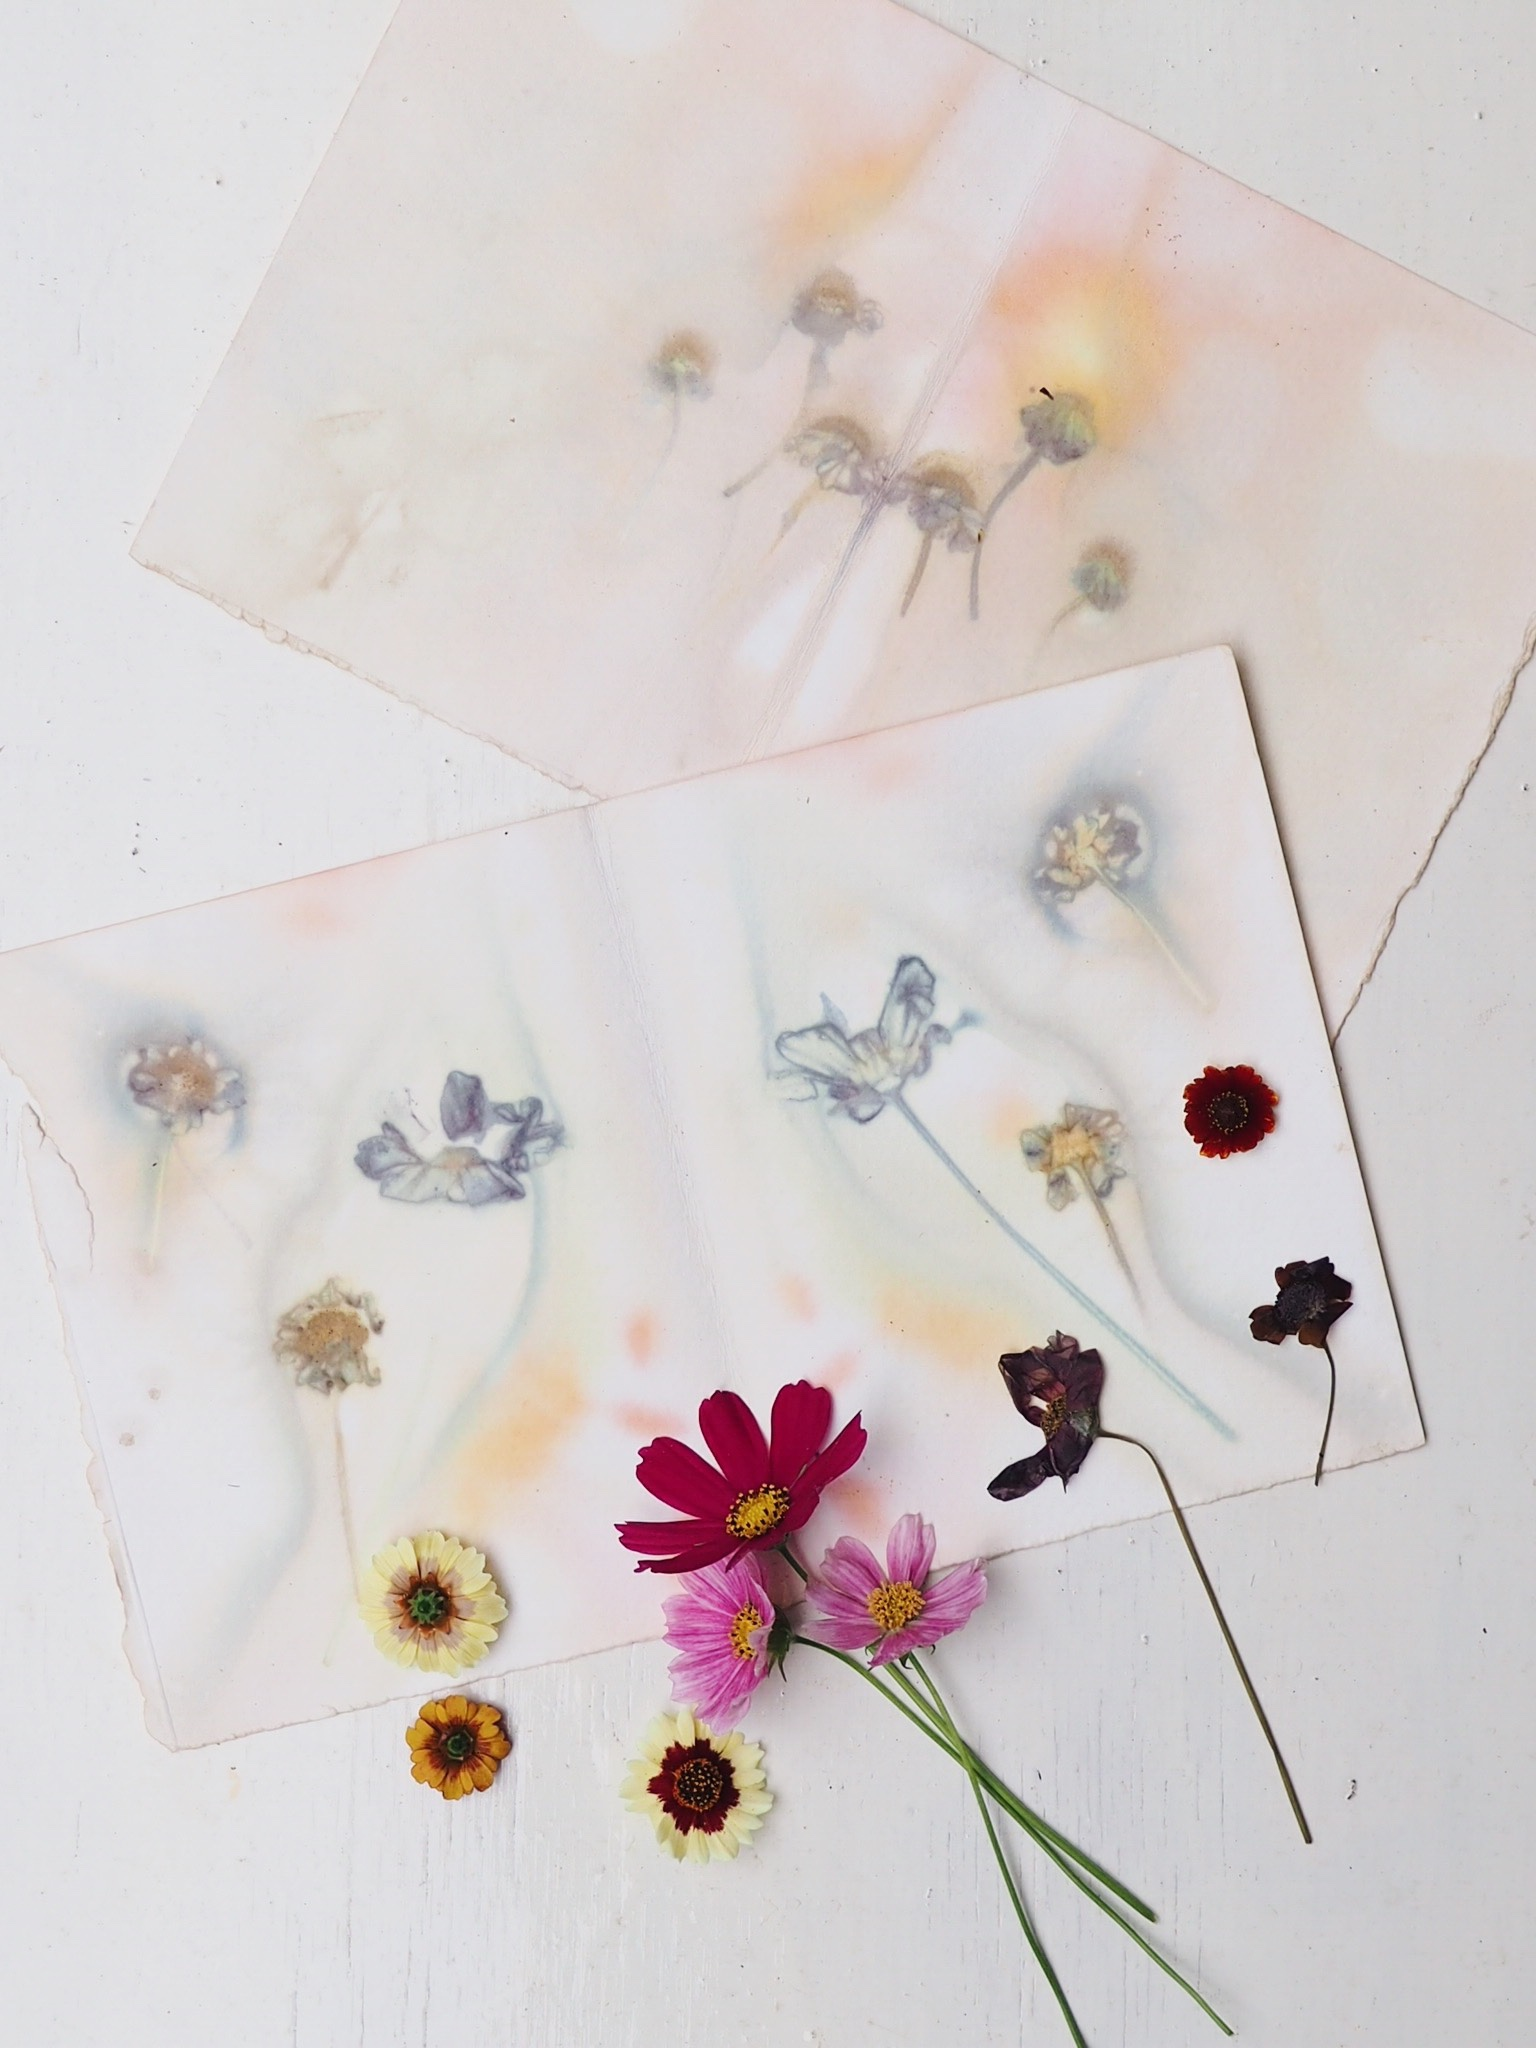 Ellie Beck Petalplum Natural and Botanical dyeing eco printing making patterns and colour with flowers